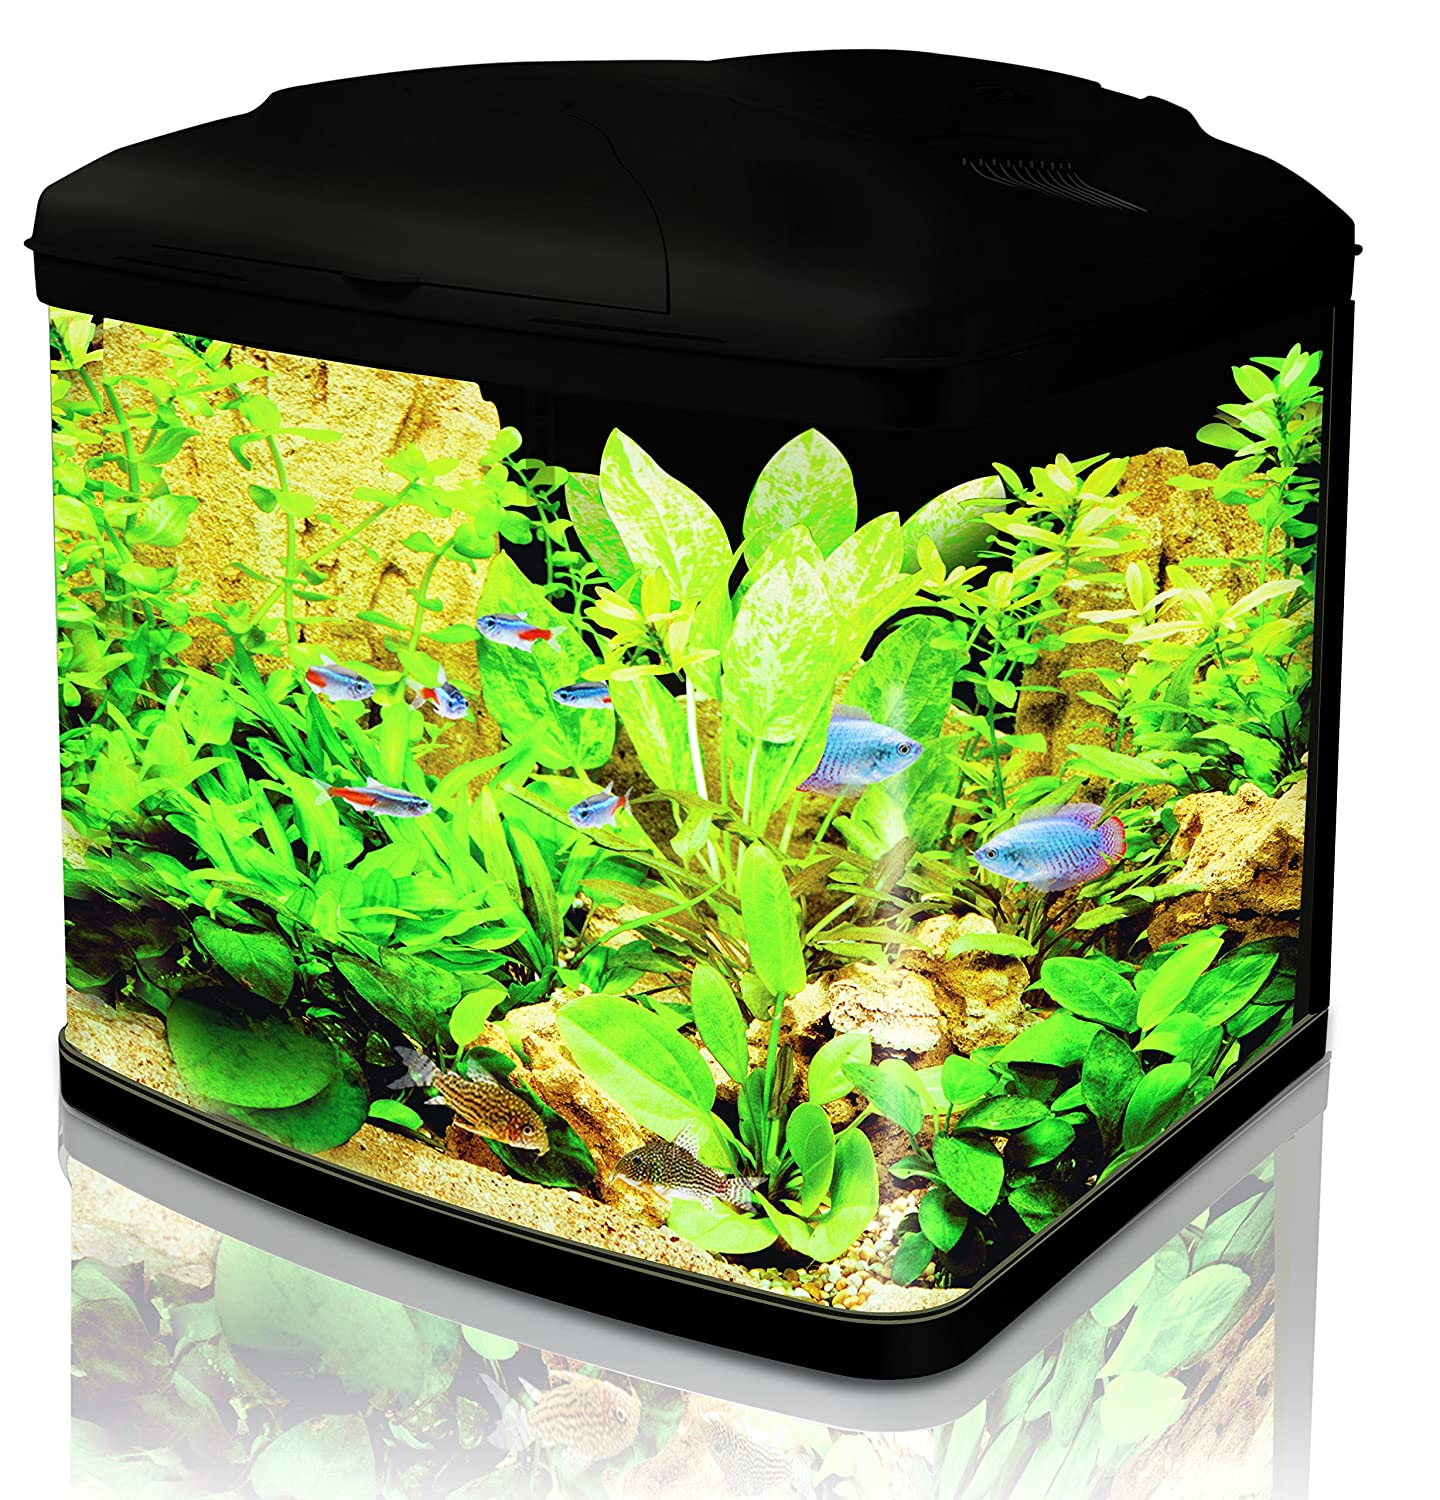 Interpet Fish Pod Glass Aquarium Fish Tank 48 Litre including CF1